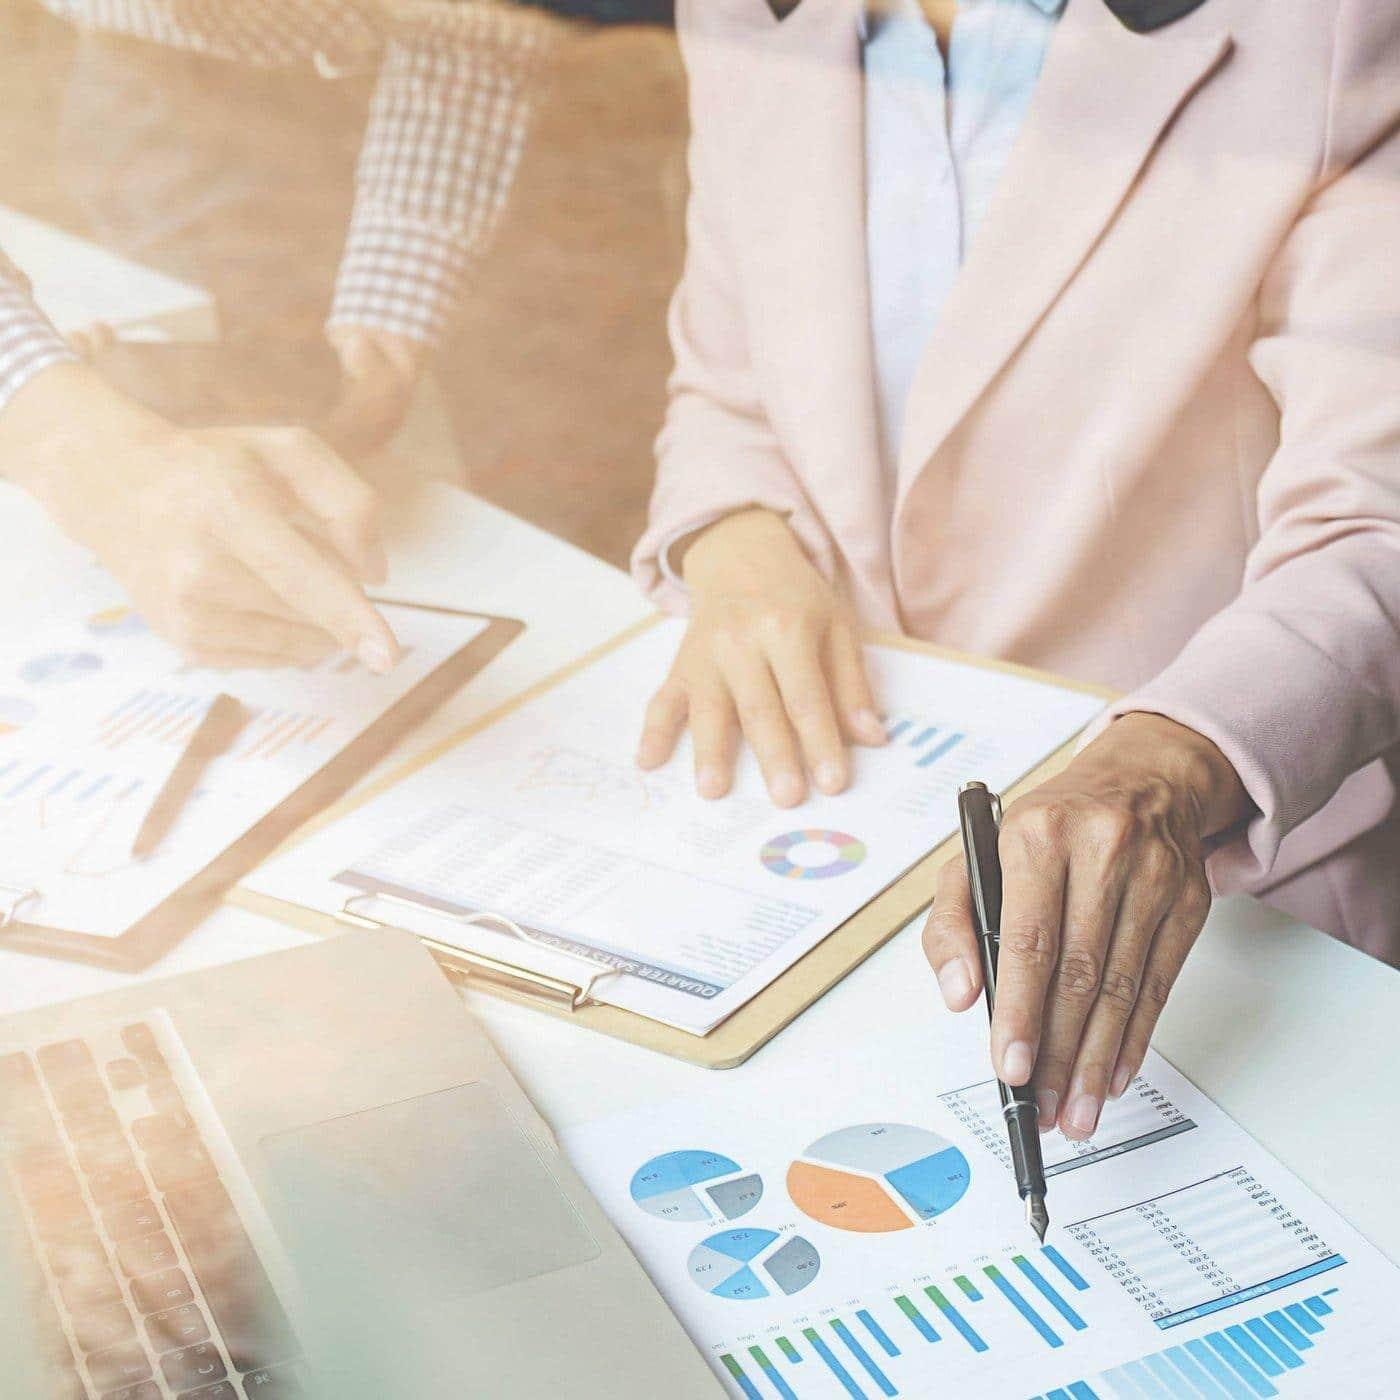 Your Virtual CIO understands your business and meets with you quarterly to make sure everything (from tracking goals, to roadmapping a technology plan to help your business grow) stays on track.